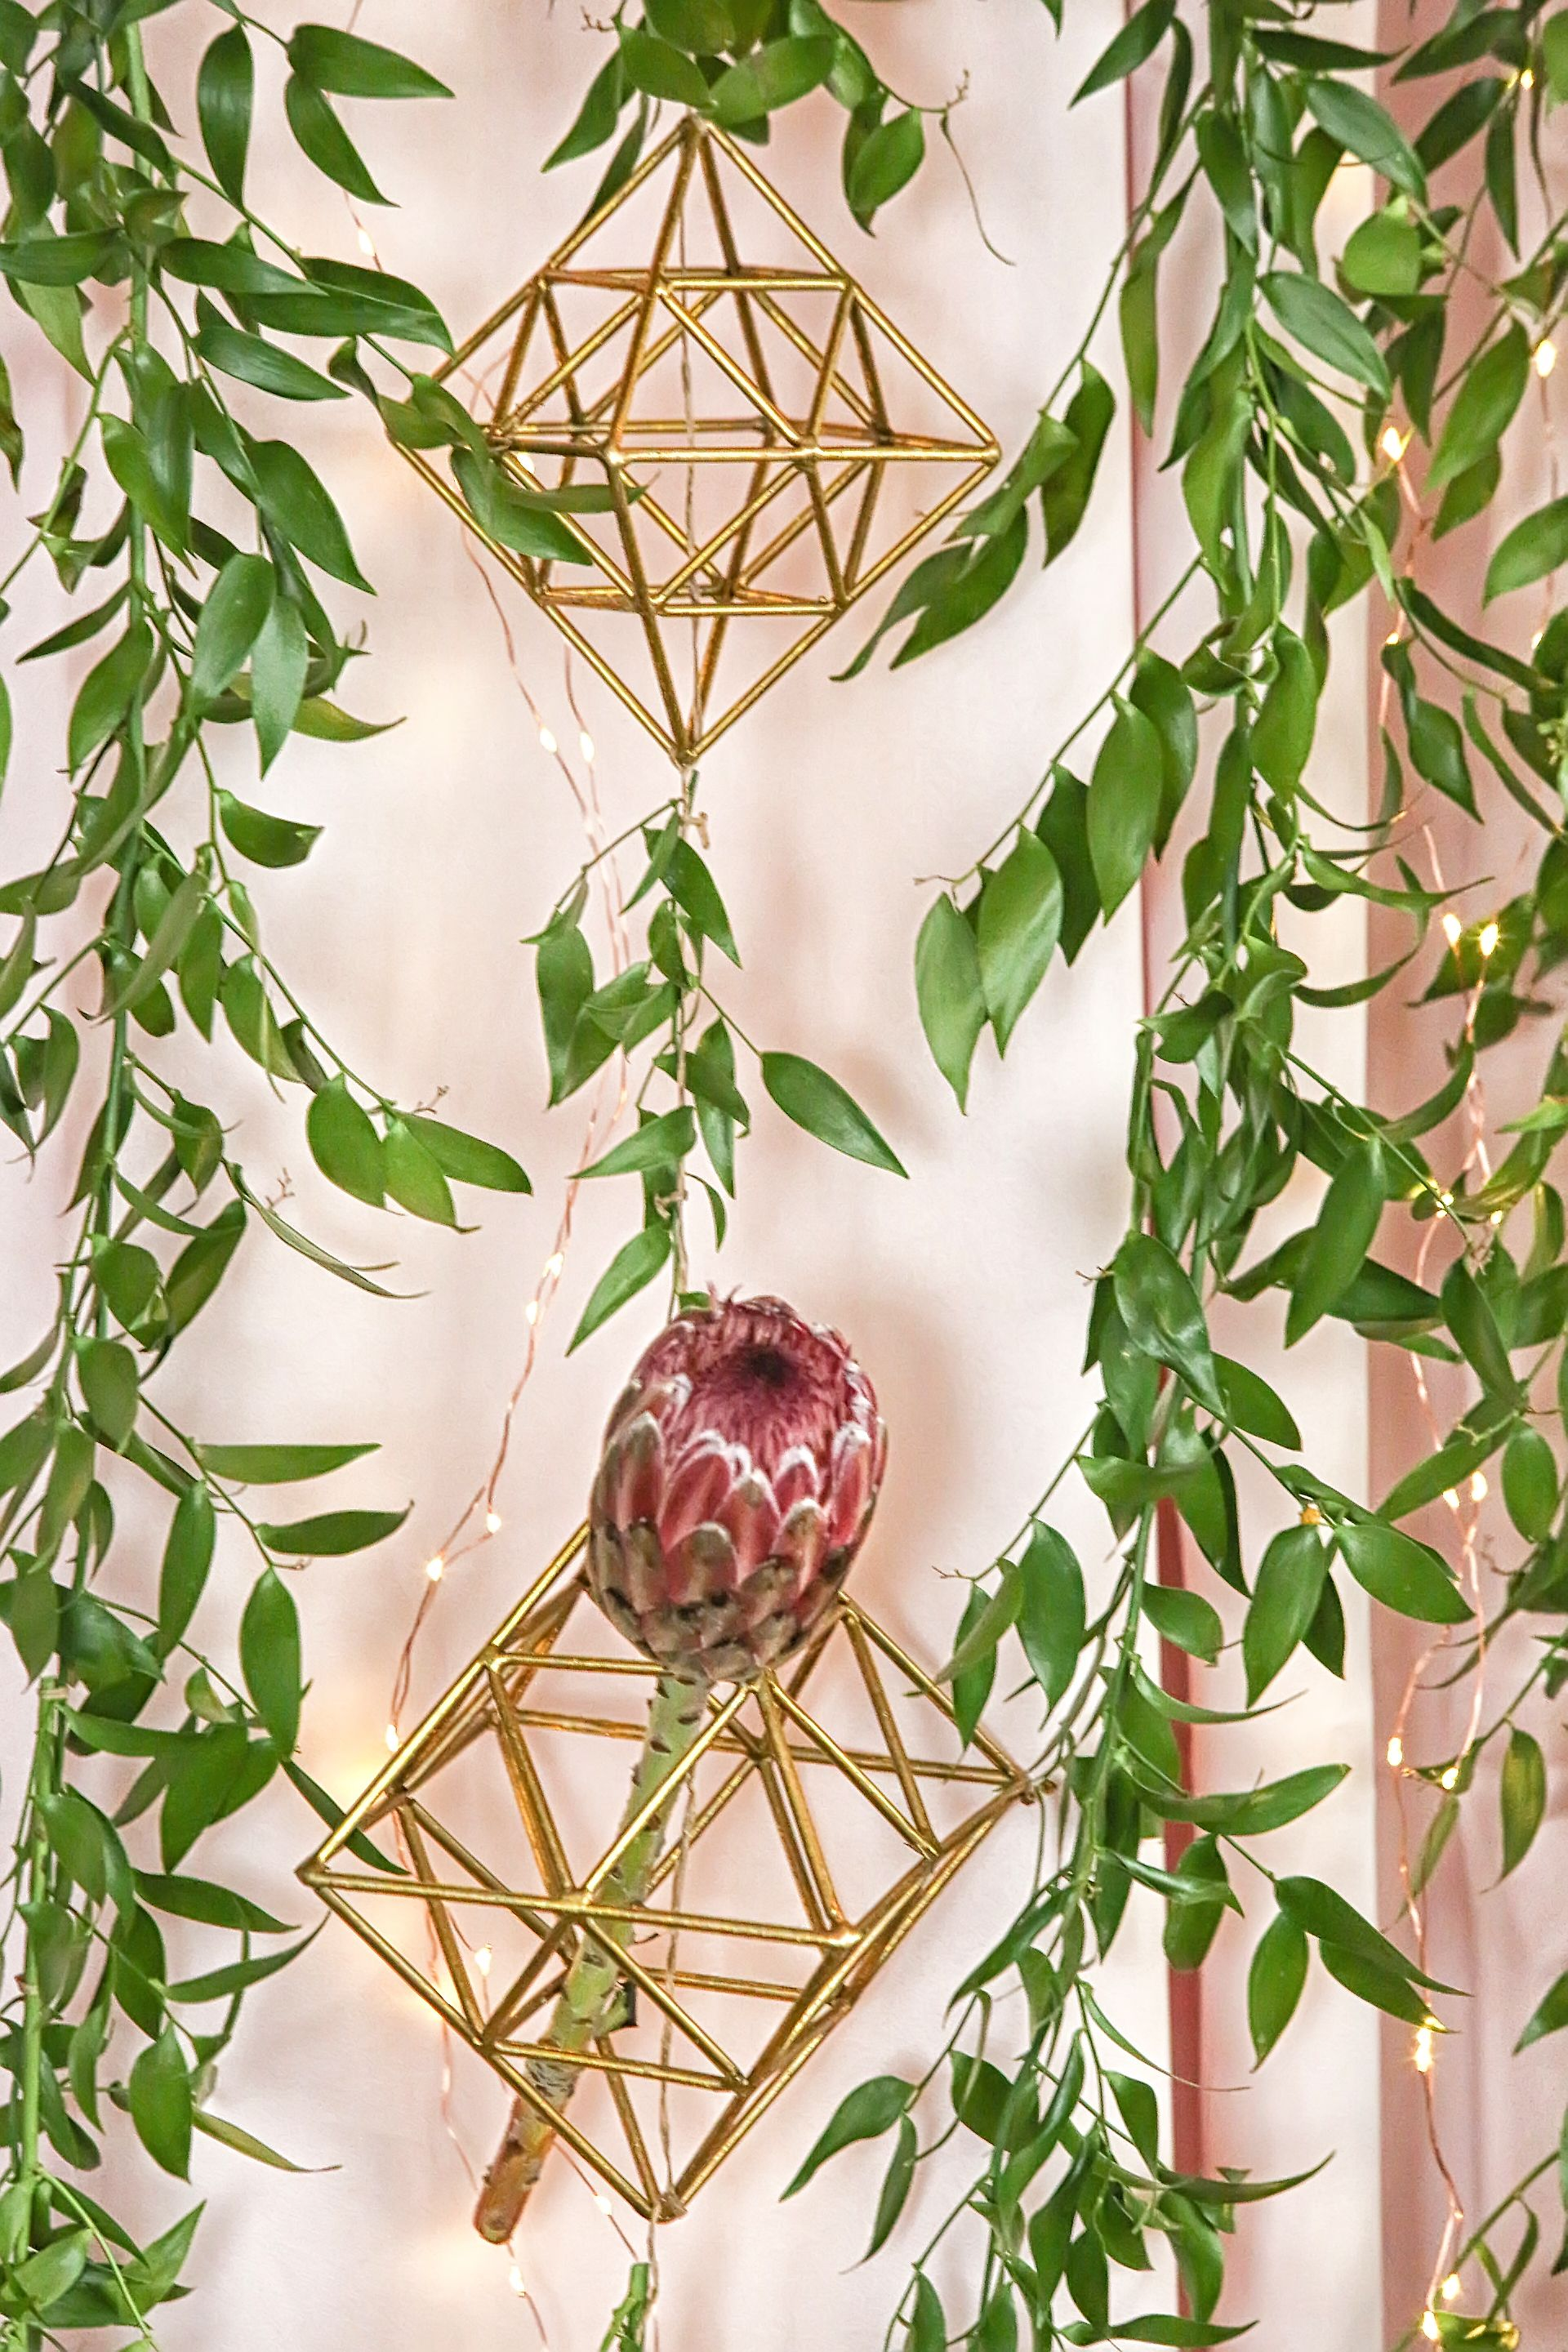 Lana Designed This Ceremony Structure With Protea And